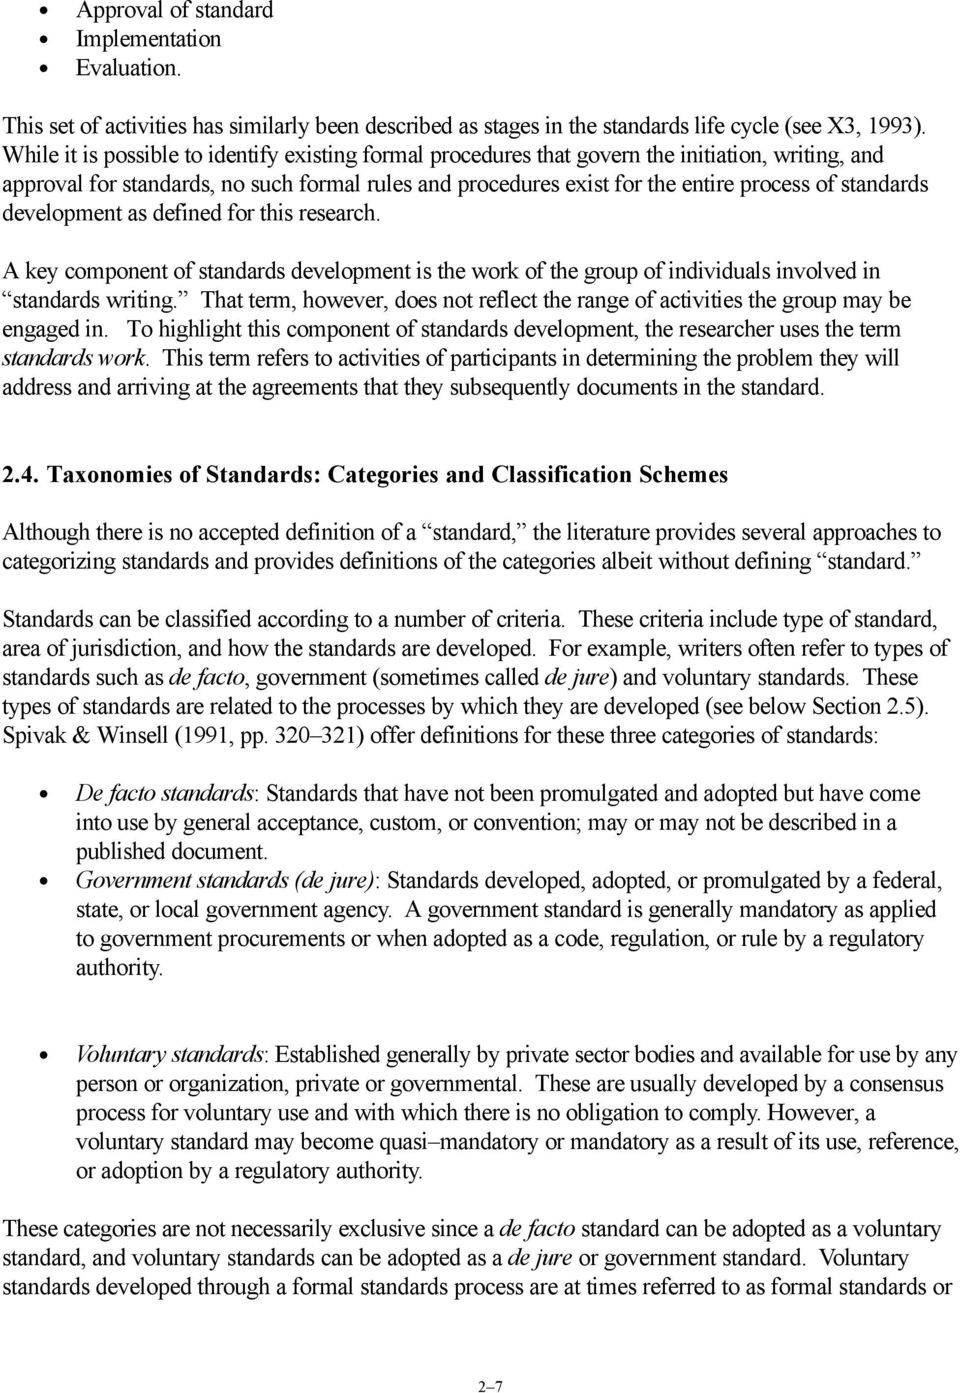 standards development as defined for this research. A key component of standards development is the work of the group of individuals involved in standards writing.